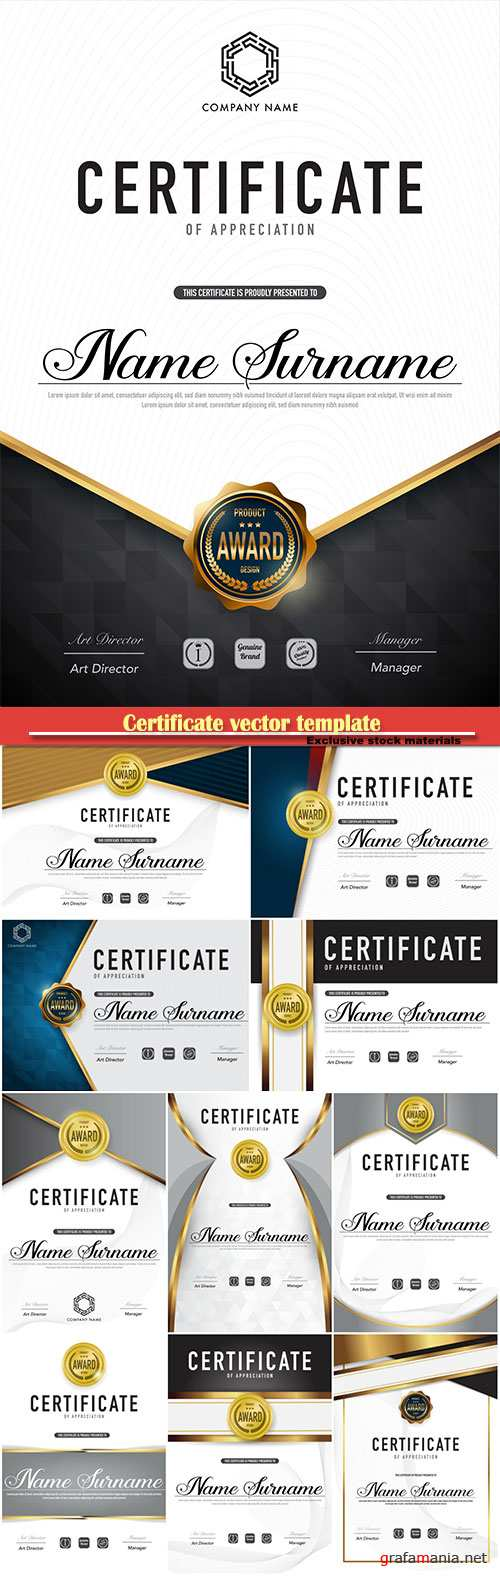 Certificate vector template luxury and diploma style # 50